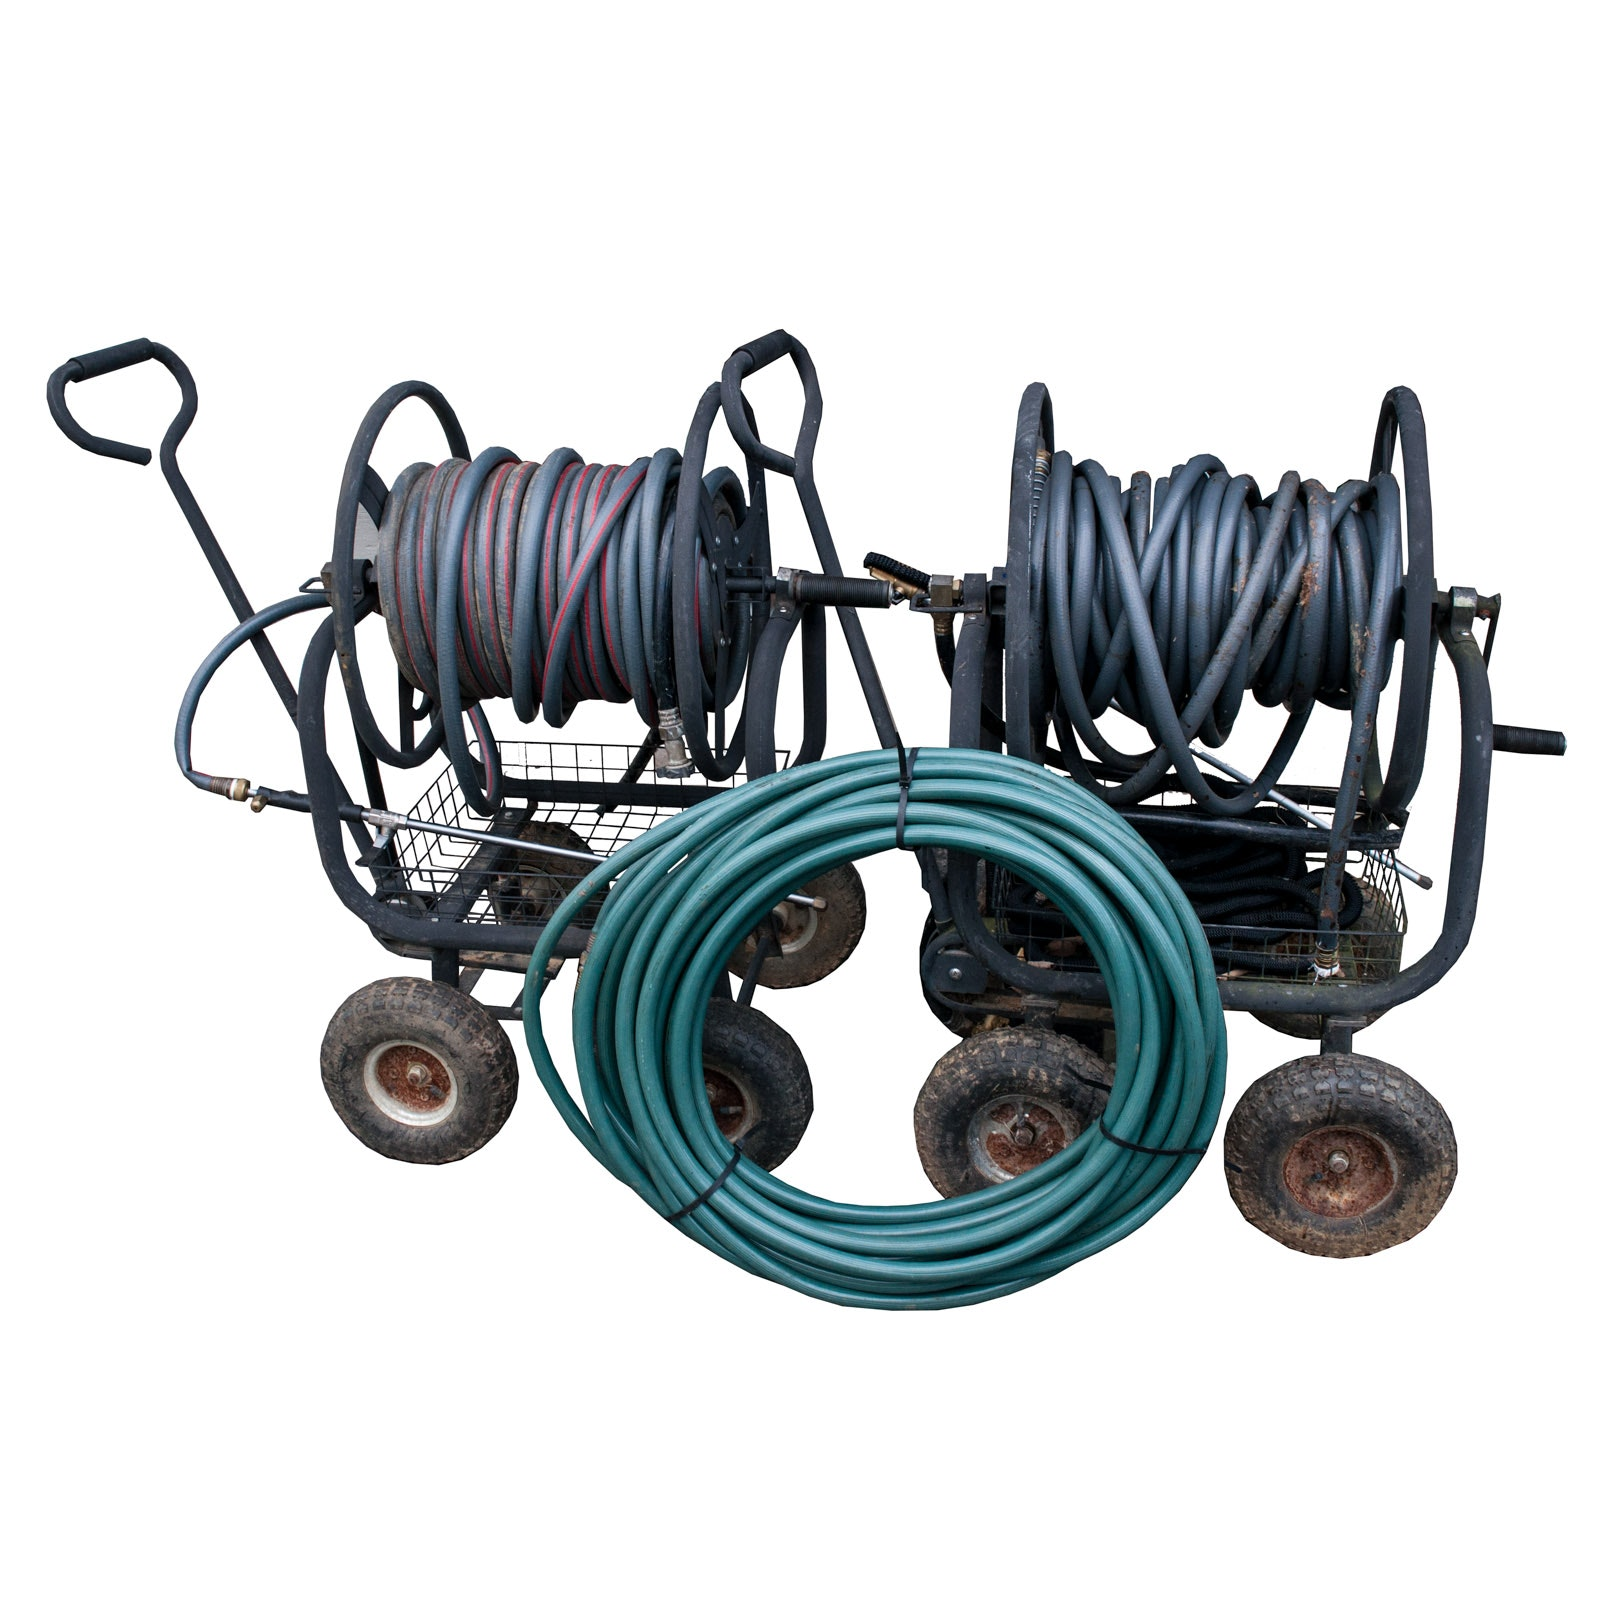 Rankam Water Hose Reel Carts with Pressure Wash Nozzles